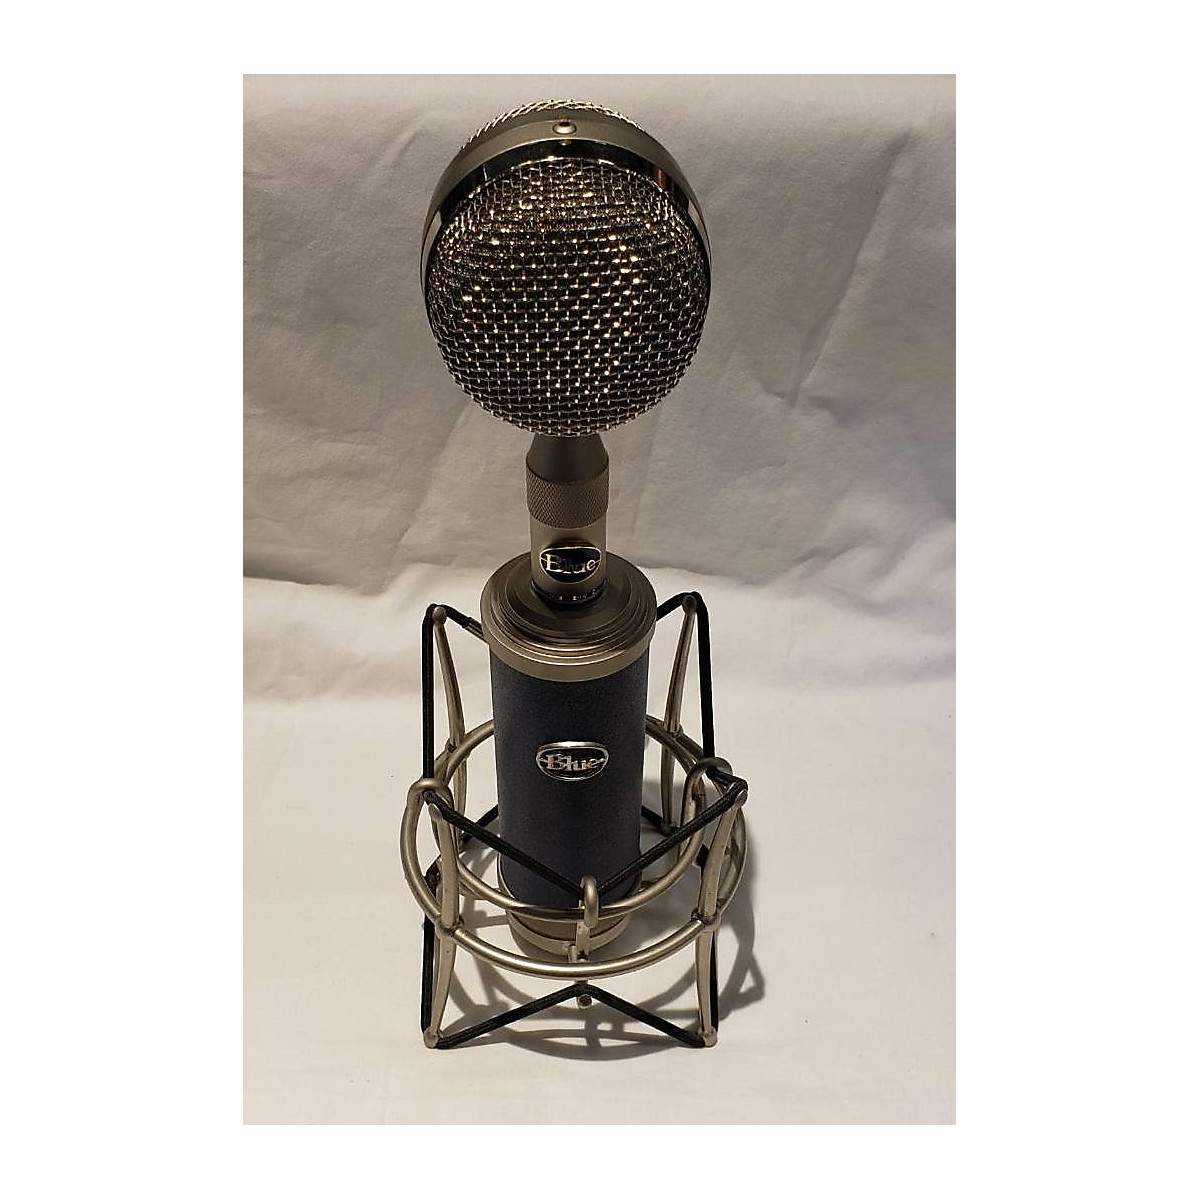 Blue Bottle Rocket Stage 1 Condenser Microphone